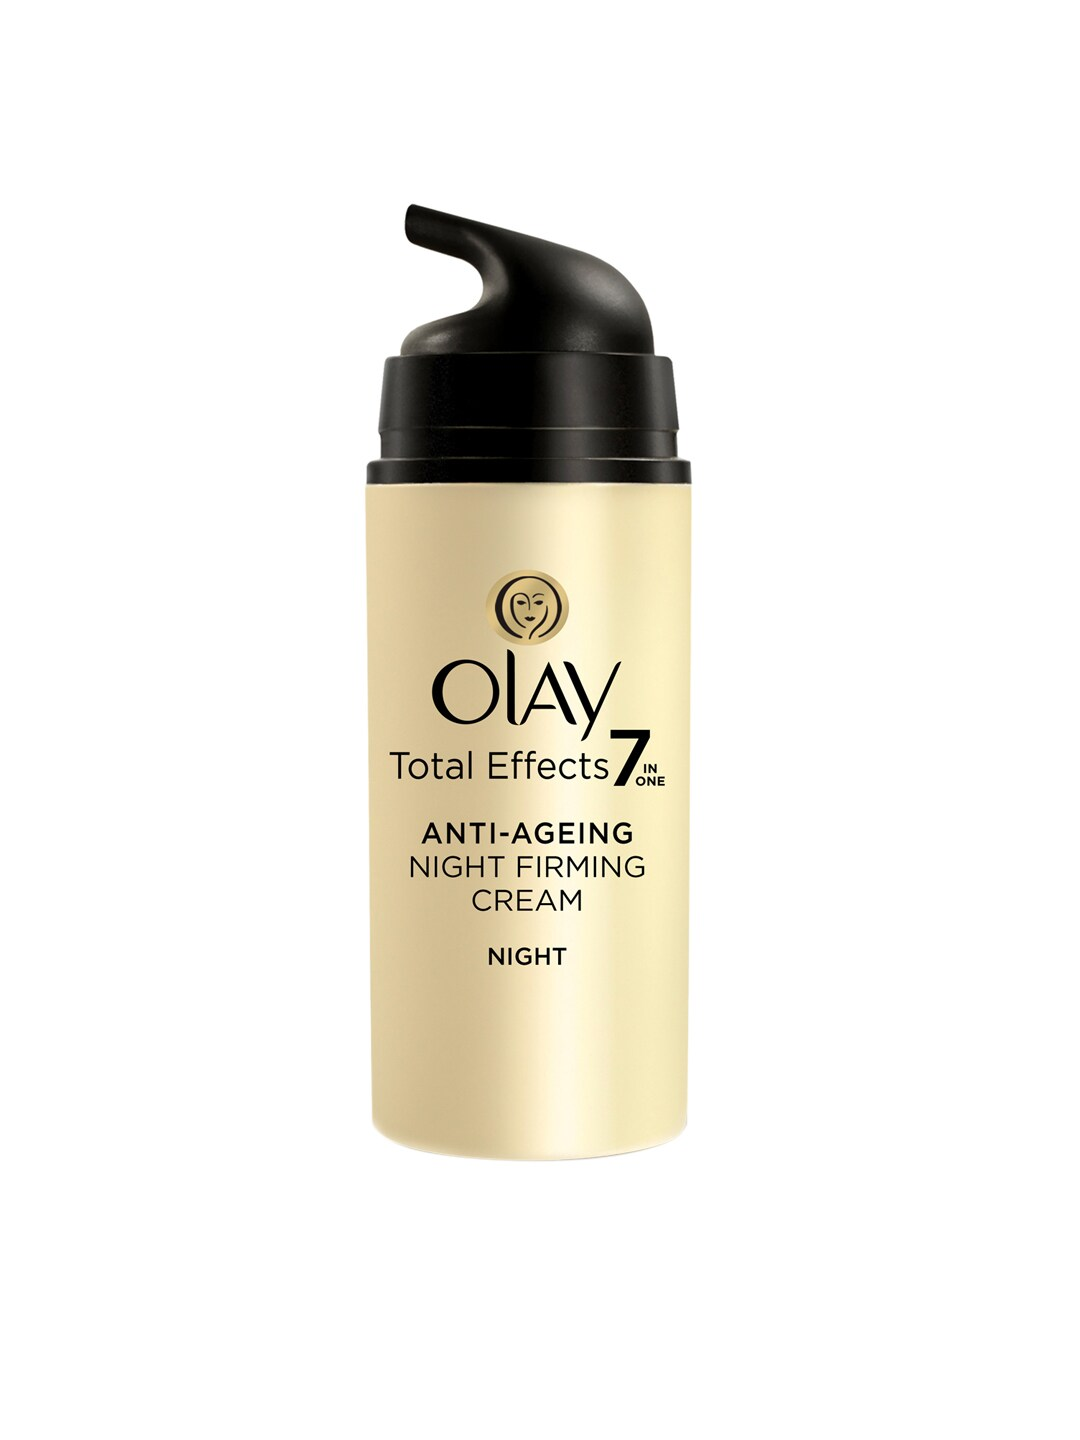 Olay Total Effects 7-in-1 Anti-Ageing Night Firming Cream 20 g image.